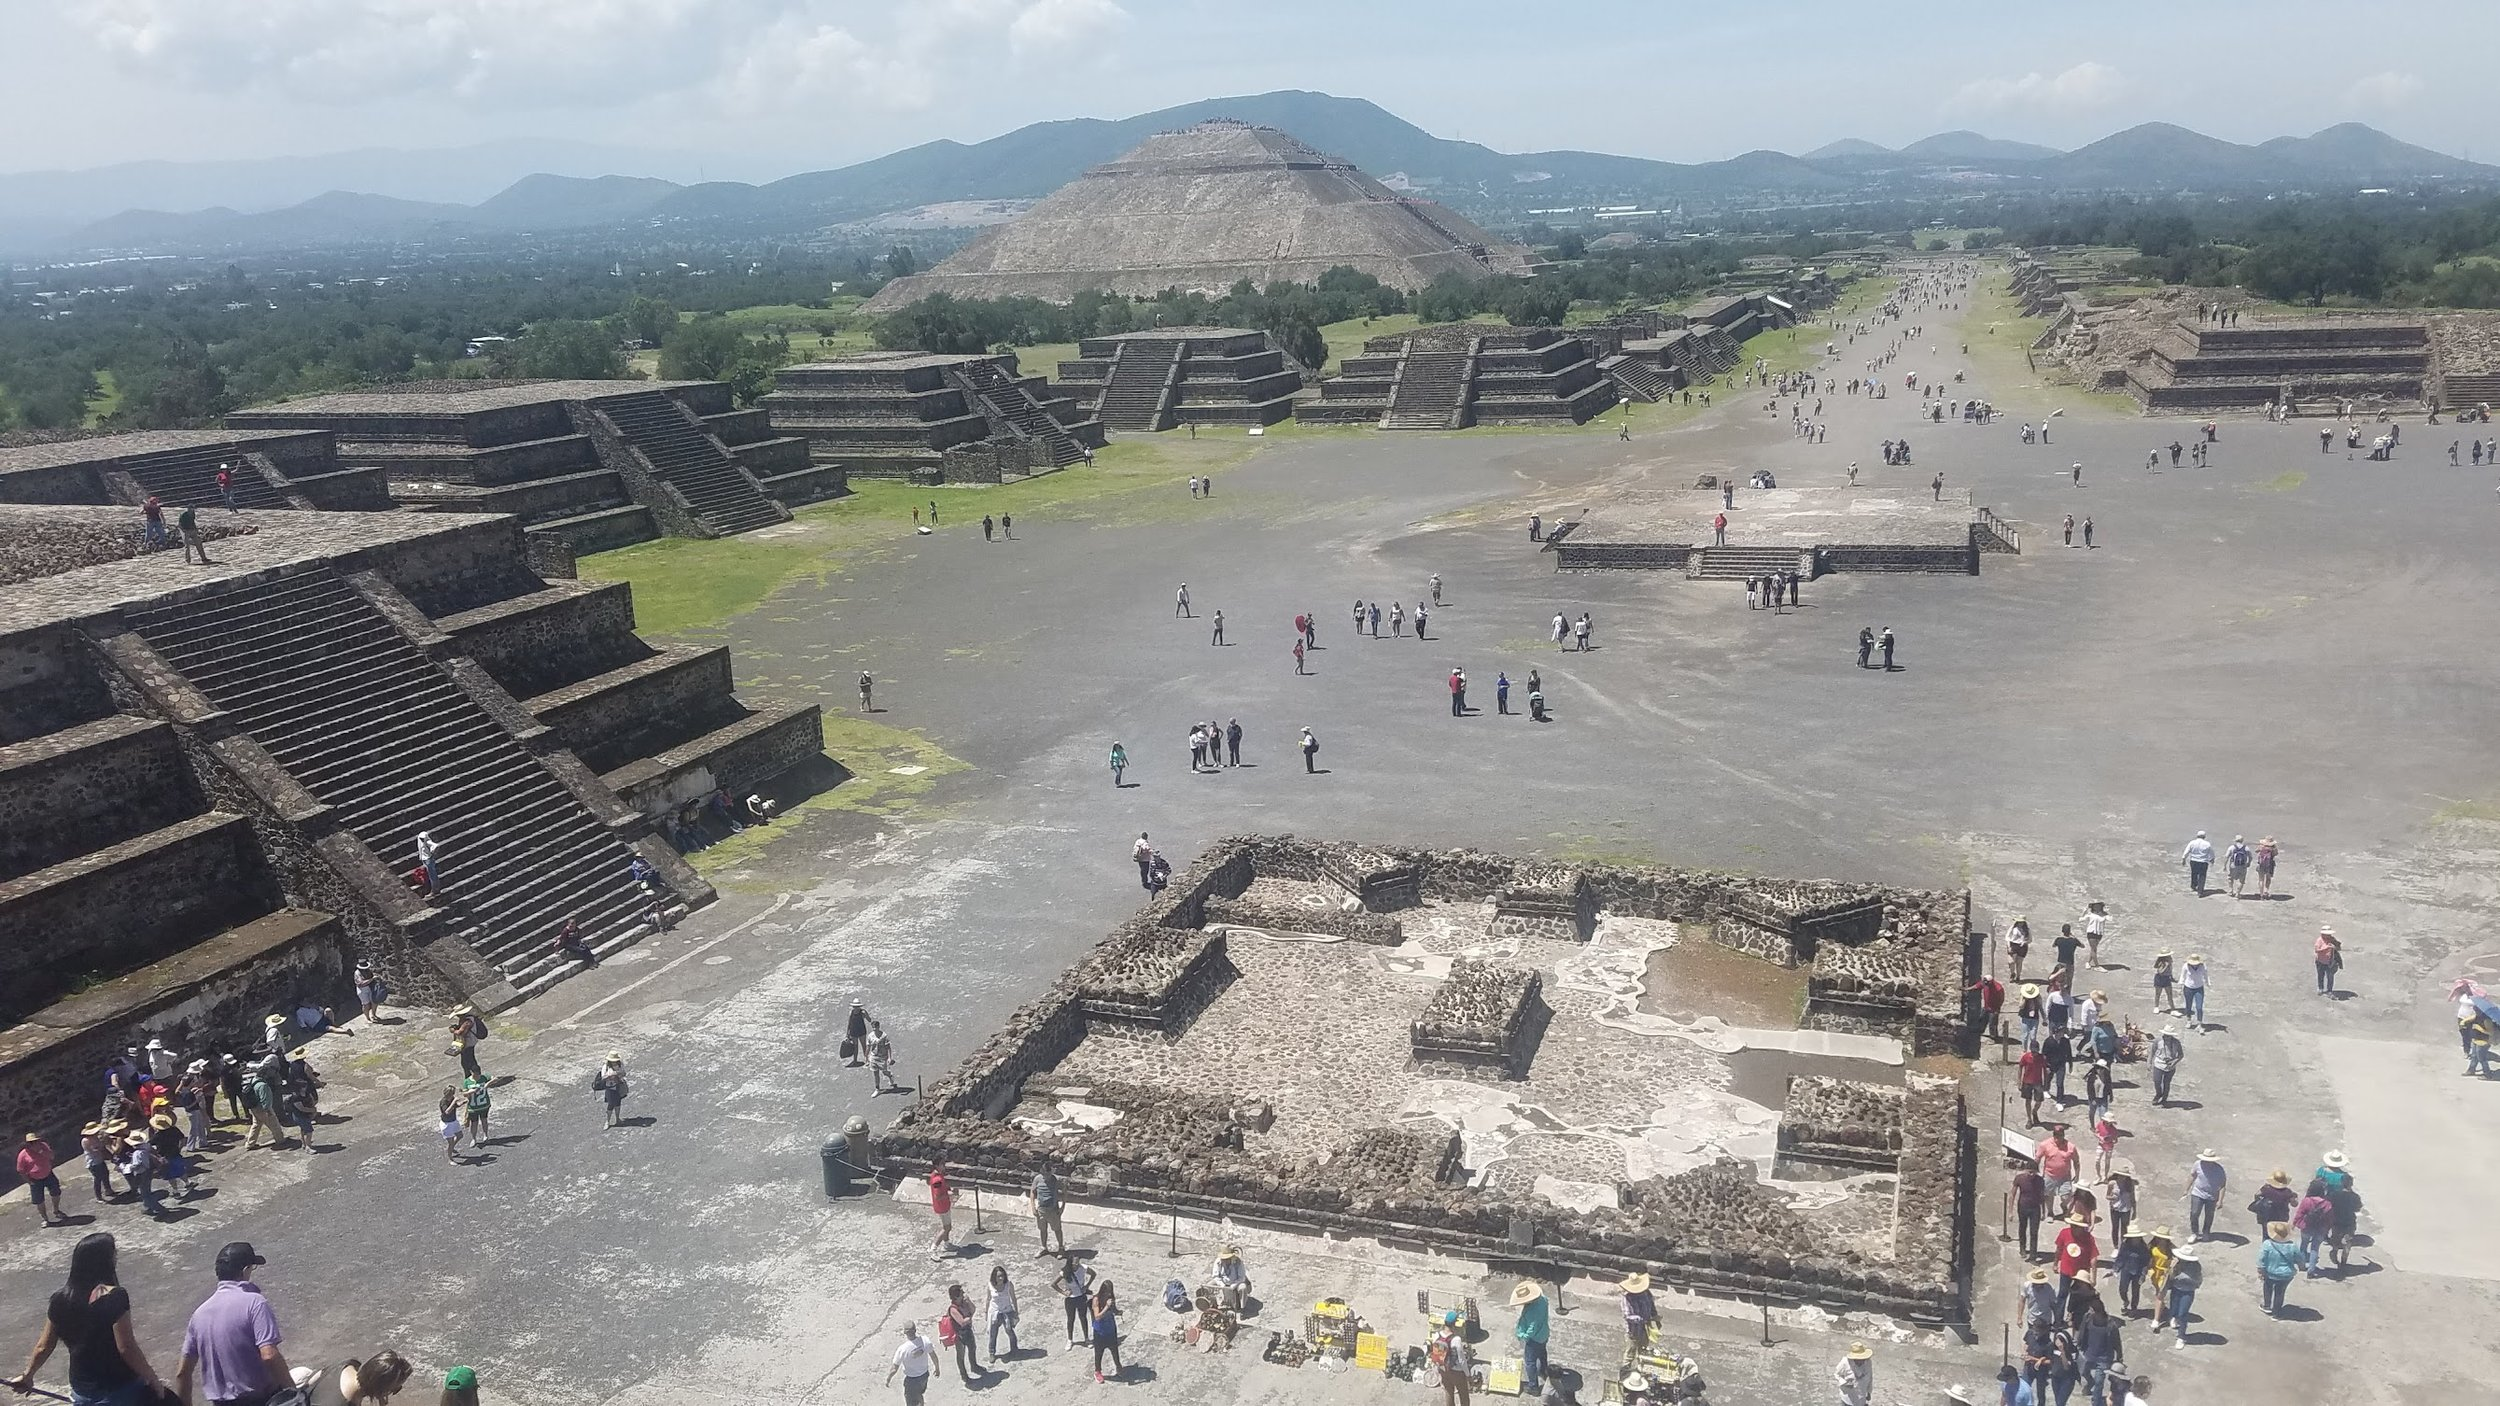 Teotihuacan, Mexico pyramids